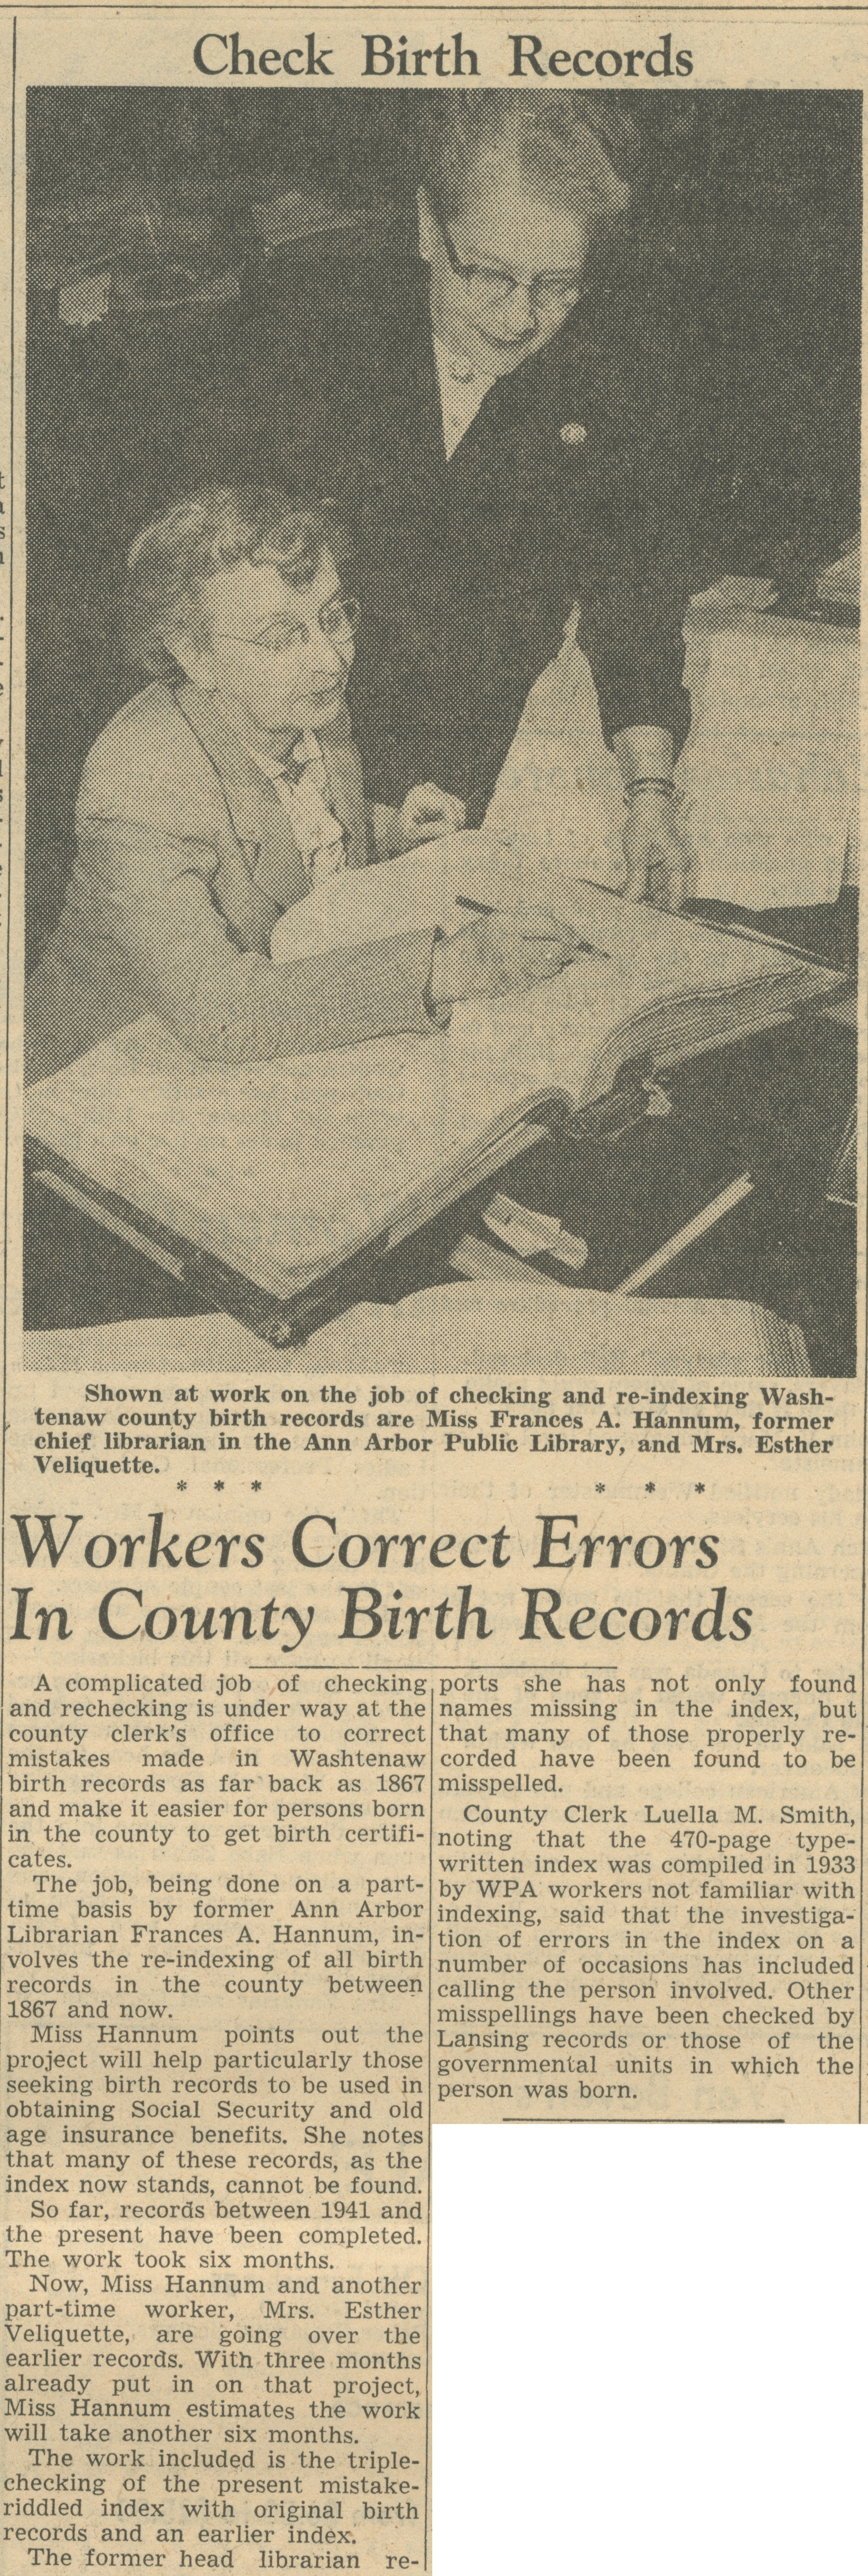 Workers Correct Errors In County Birth Records image